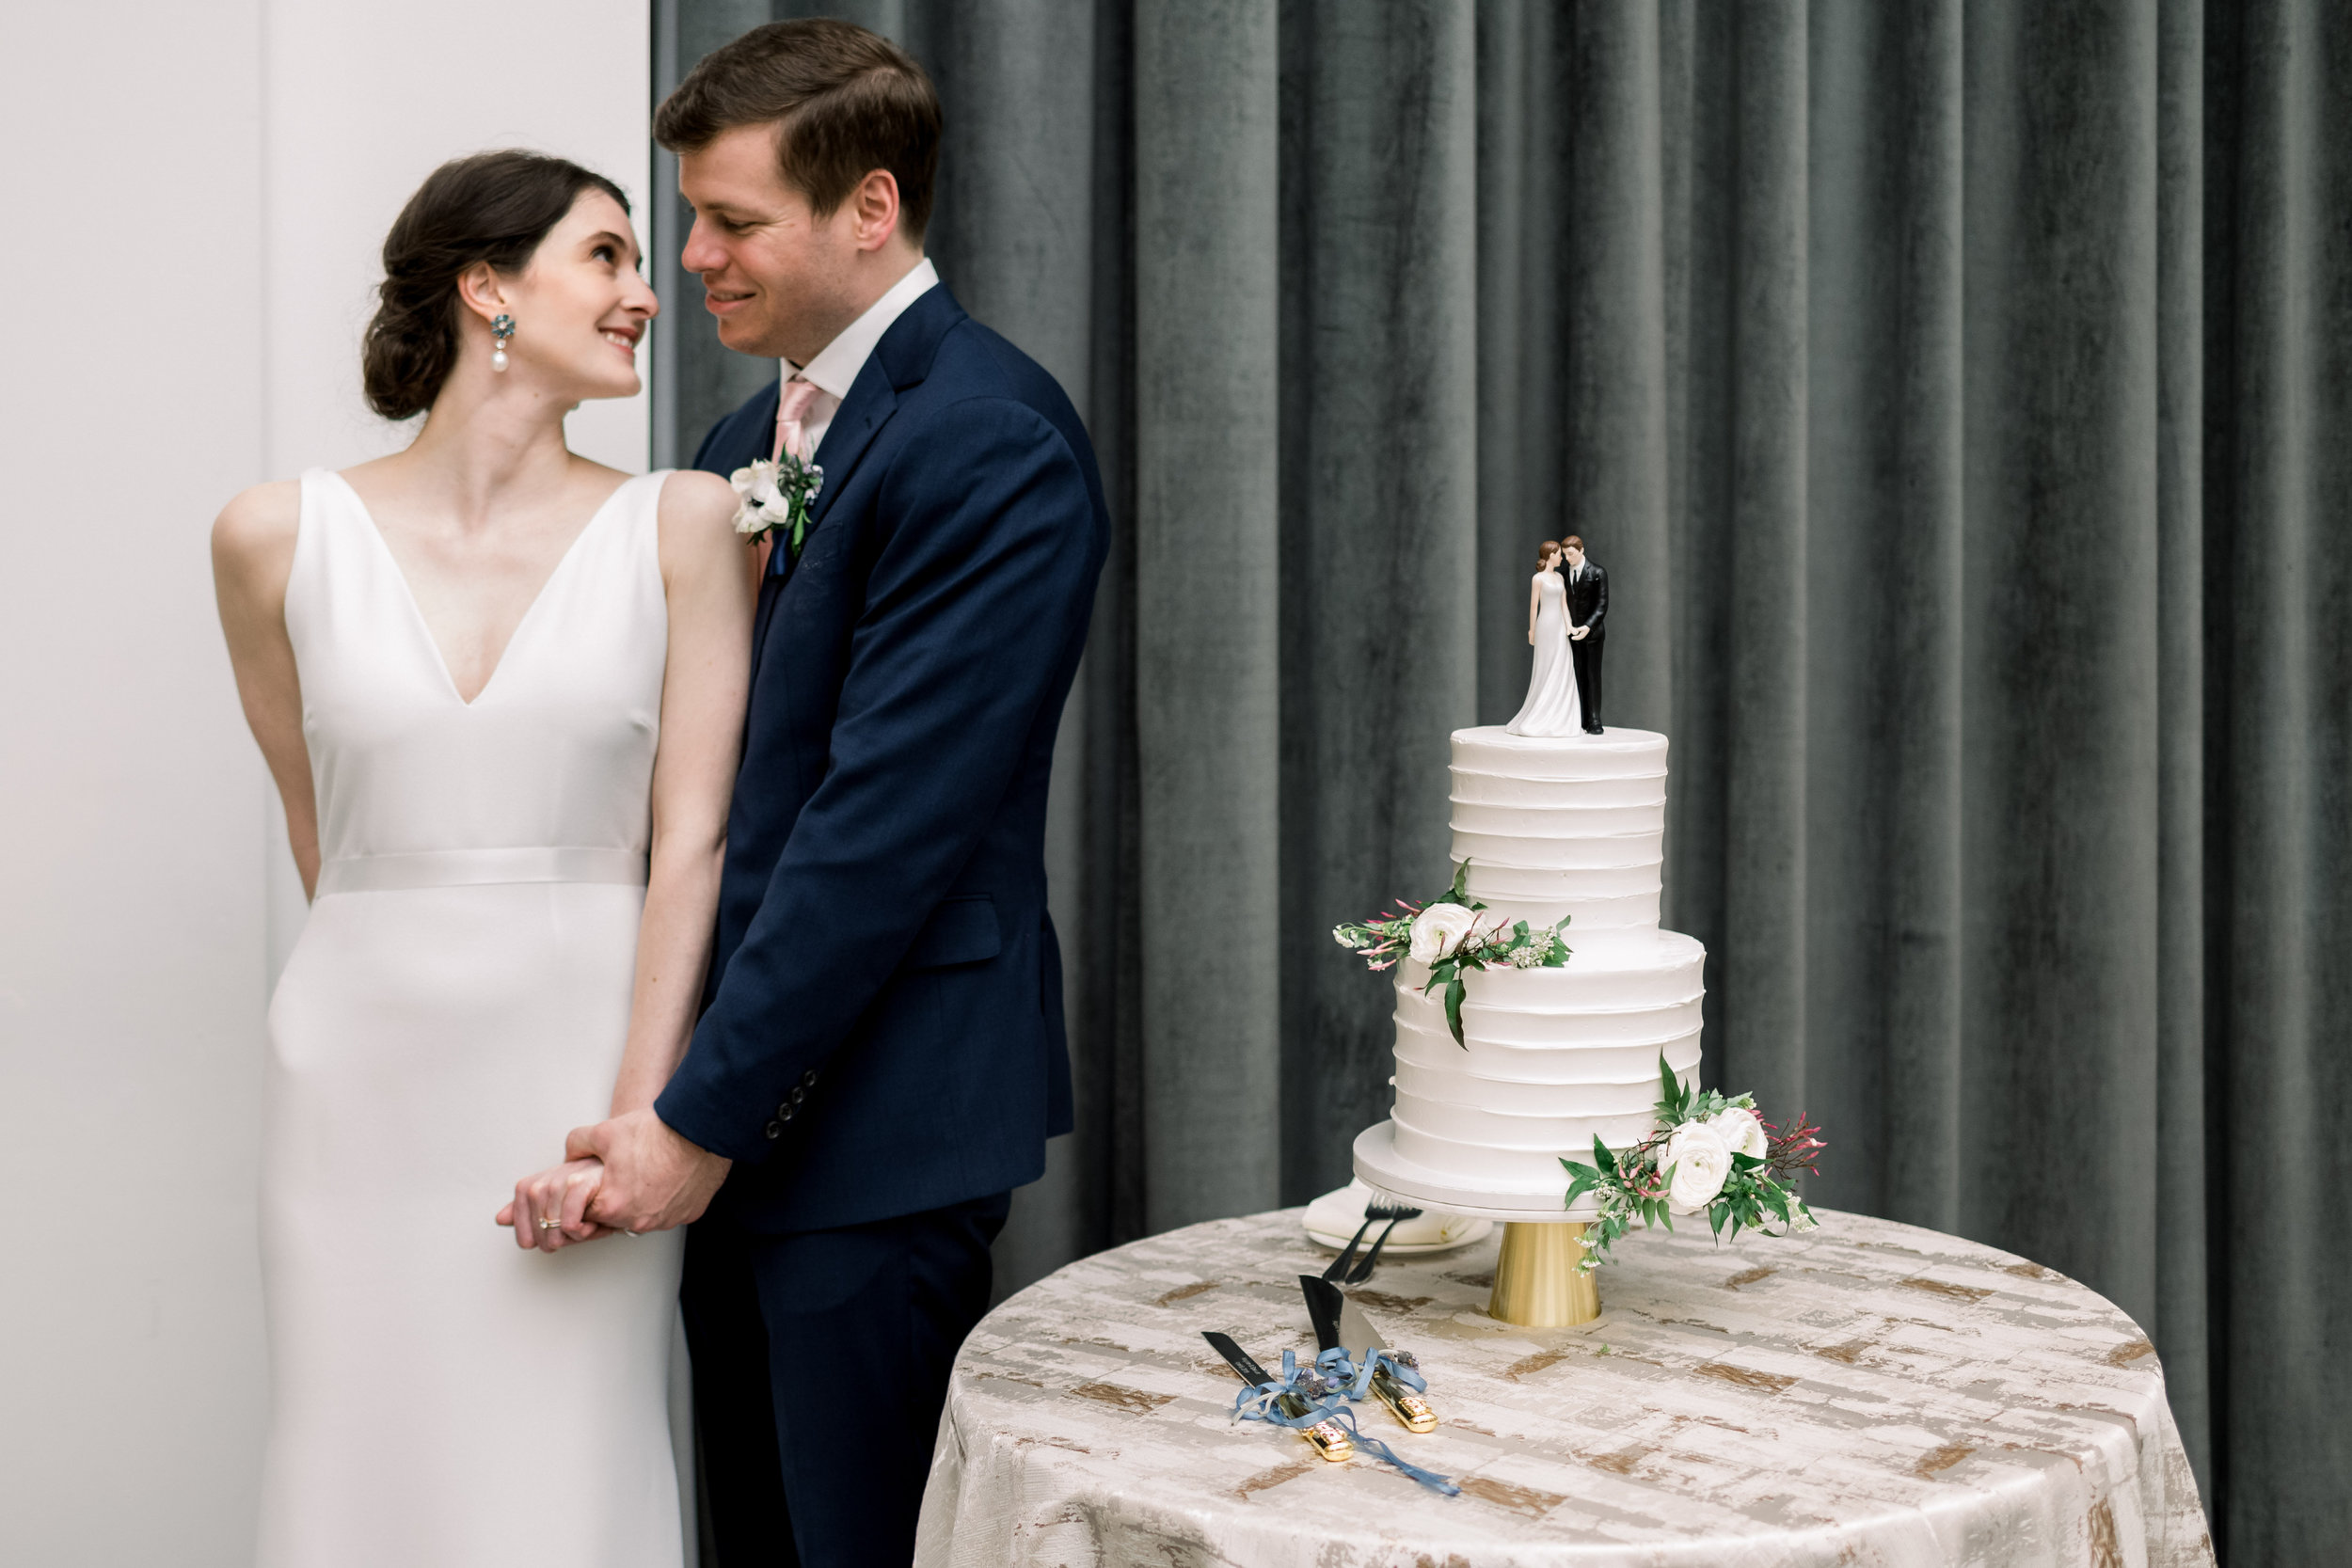 Bride and groom pose for wedding photos for Pittsburgh wedding at Hotel Monaco planned by Exhale Events. Find more modern wedding ideas at exhale-events.com!